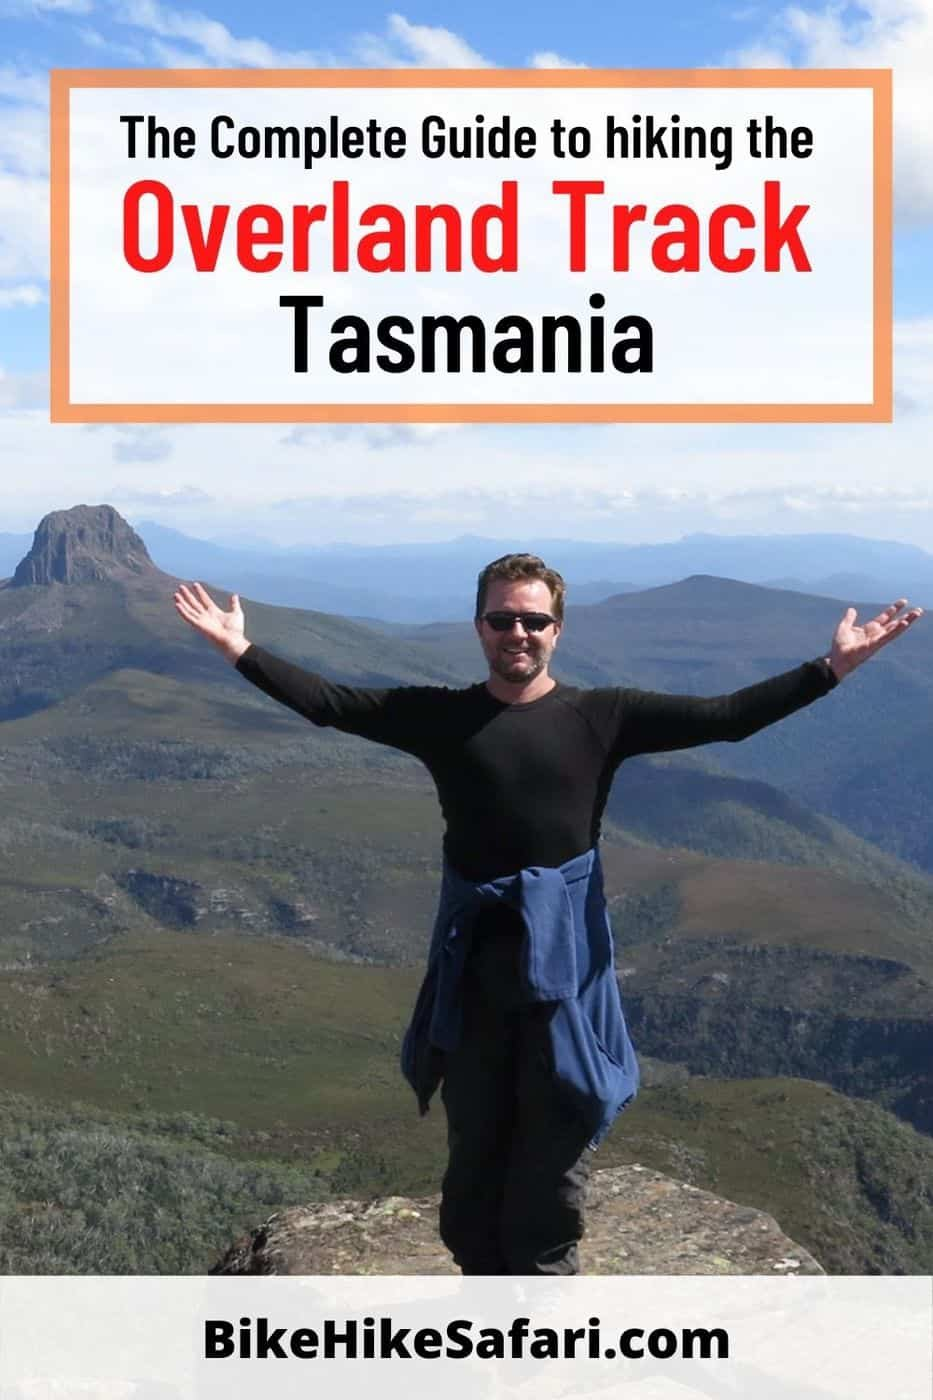 The Overland Track Tasmania is considered by many as the best hike in Australia. Everything you need to know about the Overland tracking, including Gear Lists, Transport option and a daily journal.